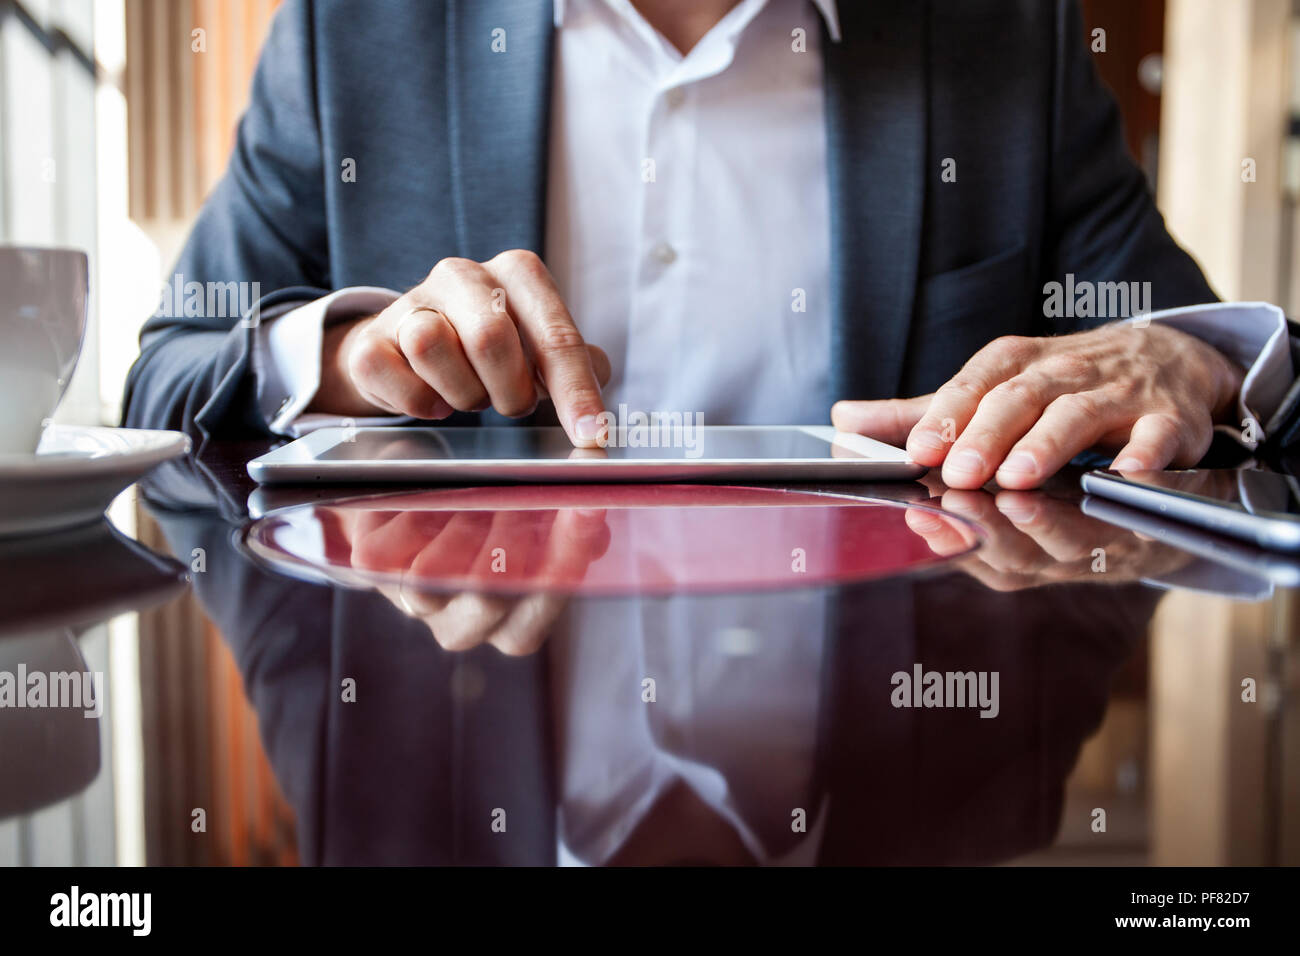 Businessman holding digital tablet, hands multitasking man using tablet - Stock Image